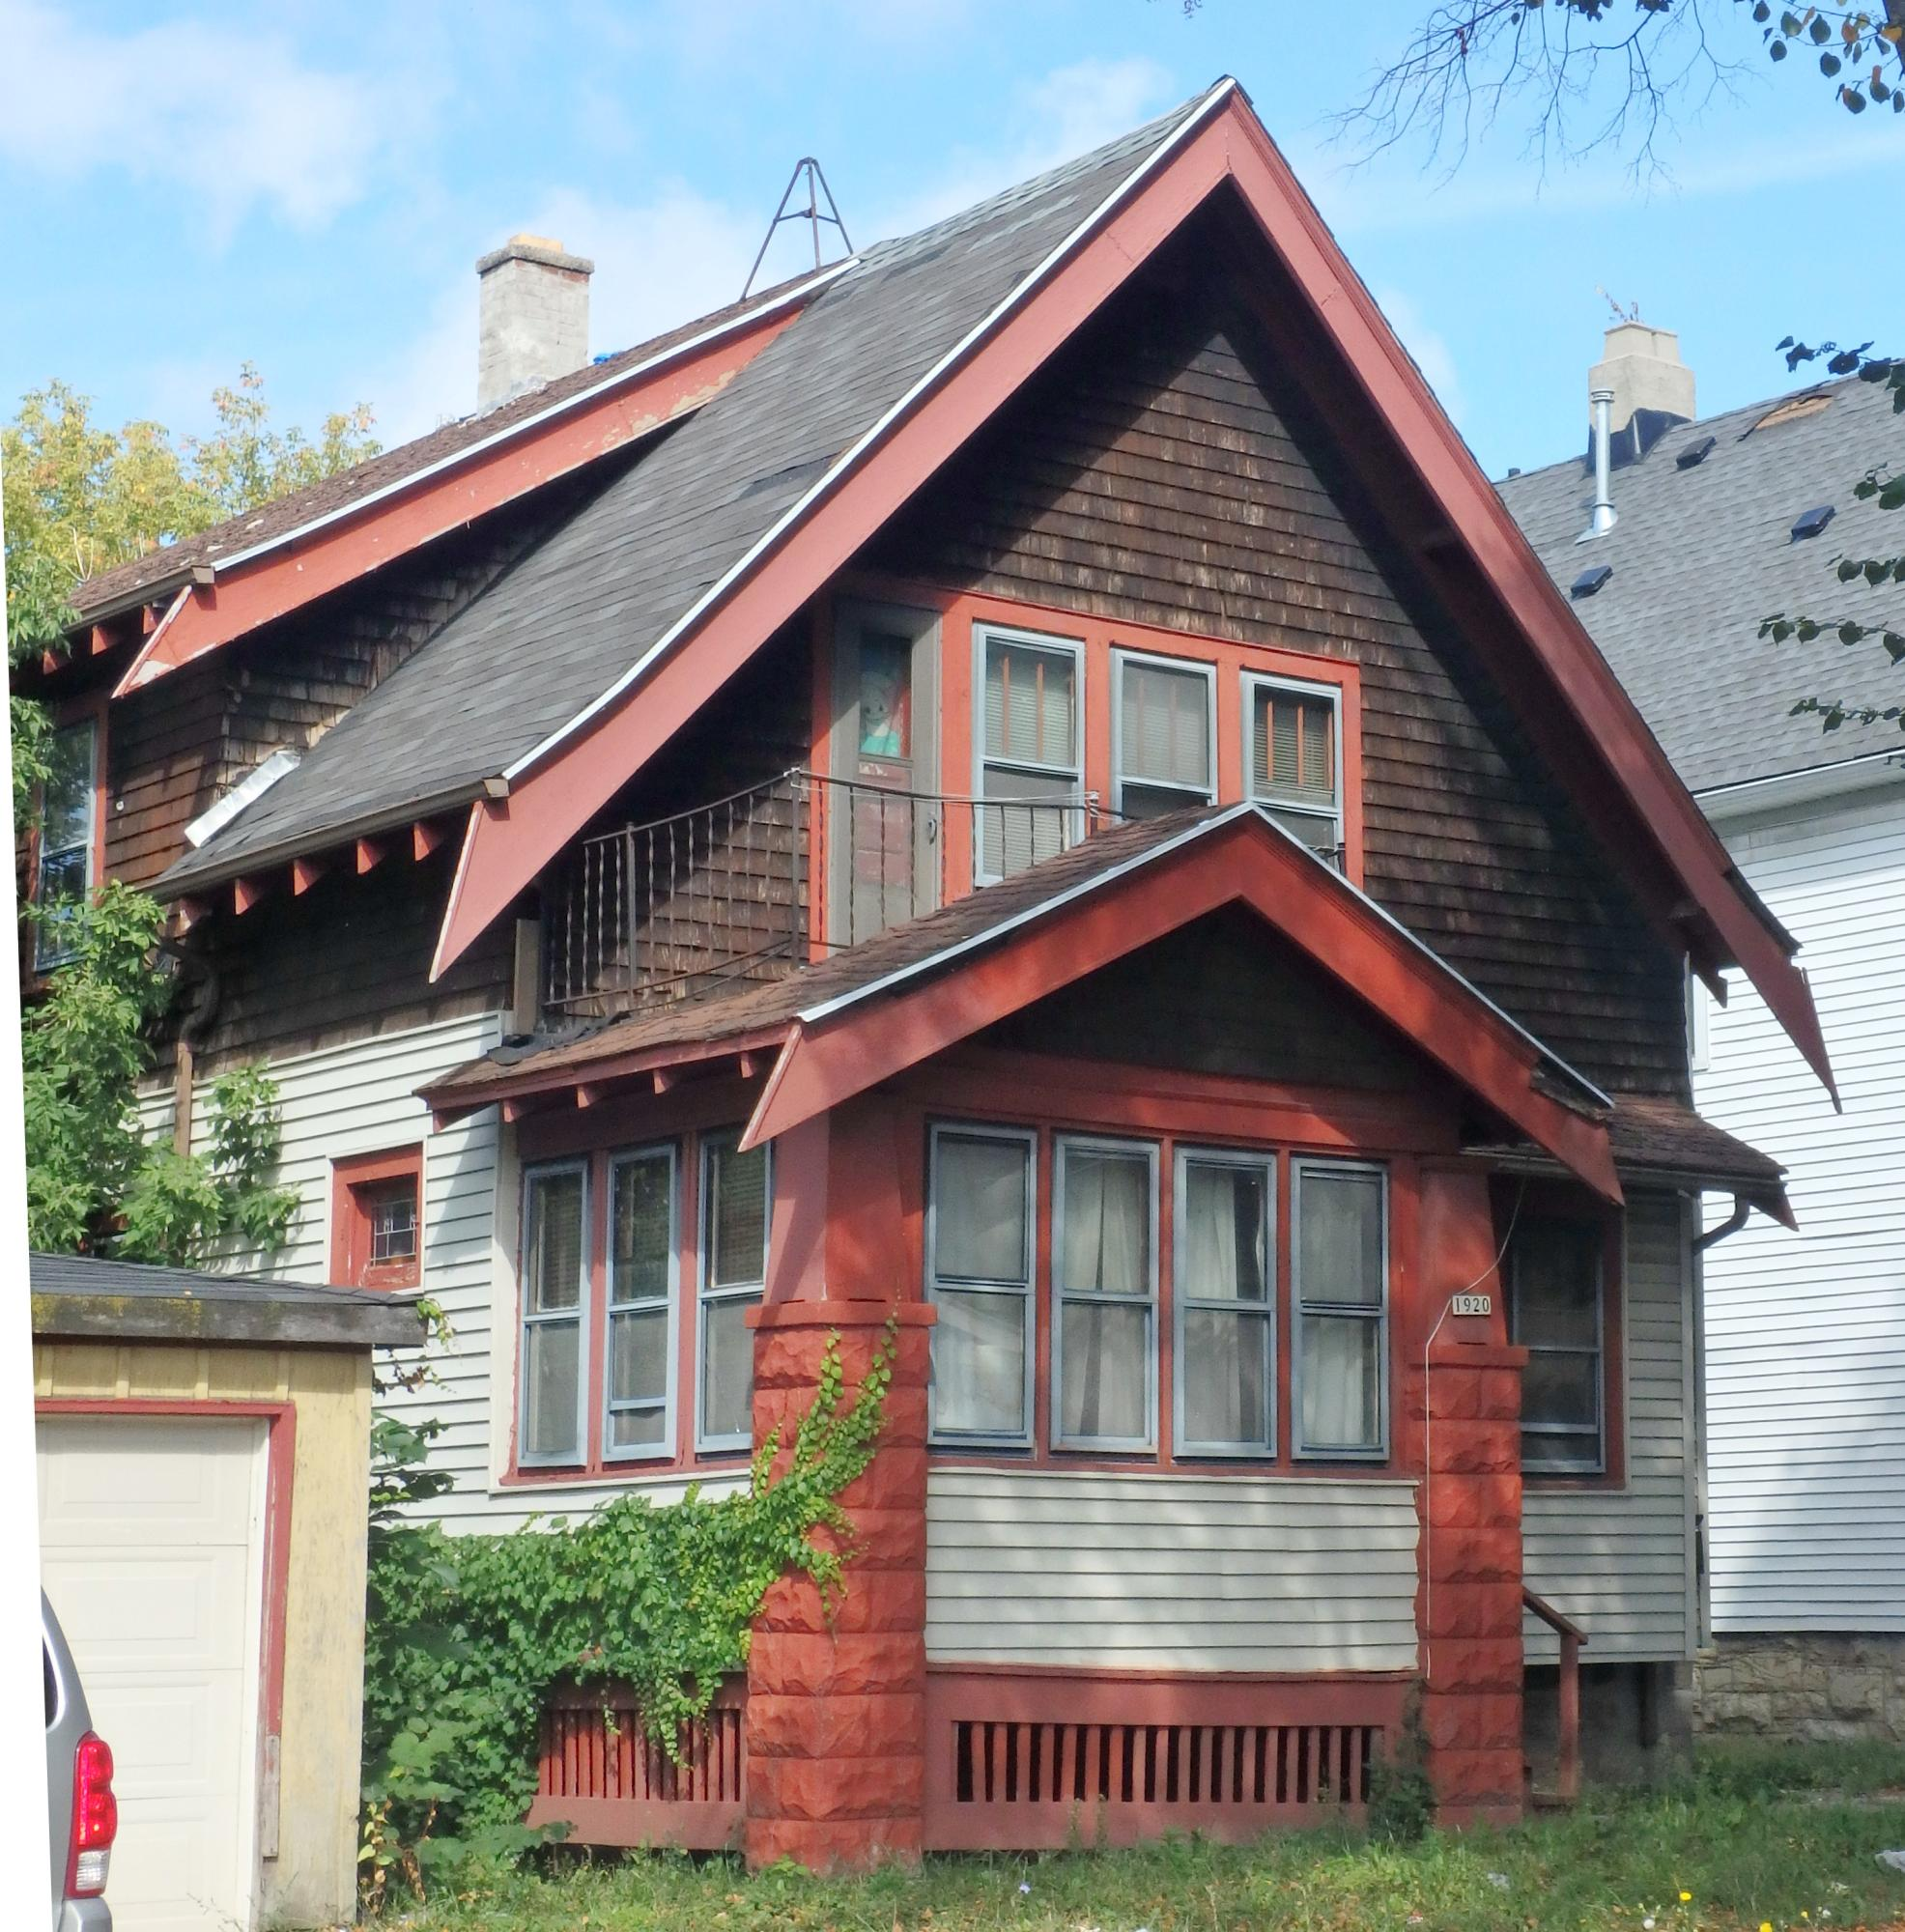 1920 Vienna Ave, Milwaukee, Wisconsin 53206, 2 Bedrooms Bedrooms, 5 Rooms Rooms,1 BathroomBathrooms,Two-Family,For Sale,Vienna Ave,1,1565457